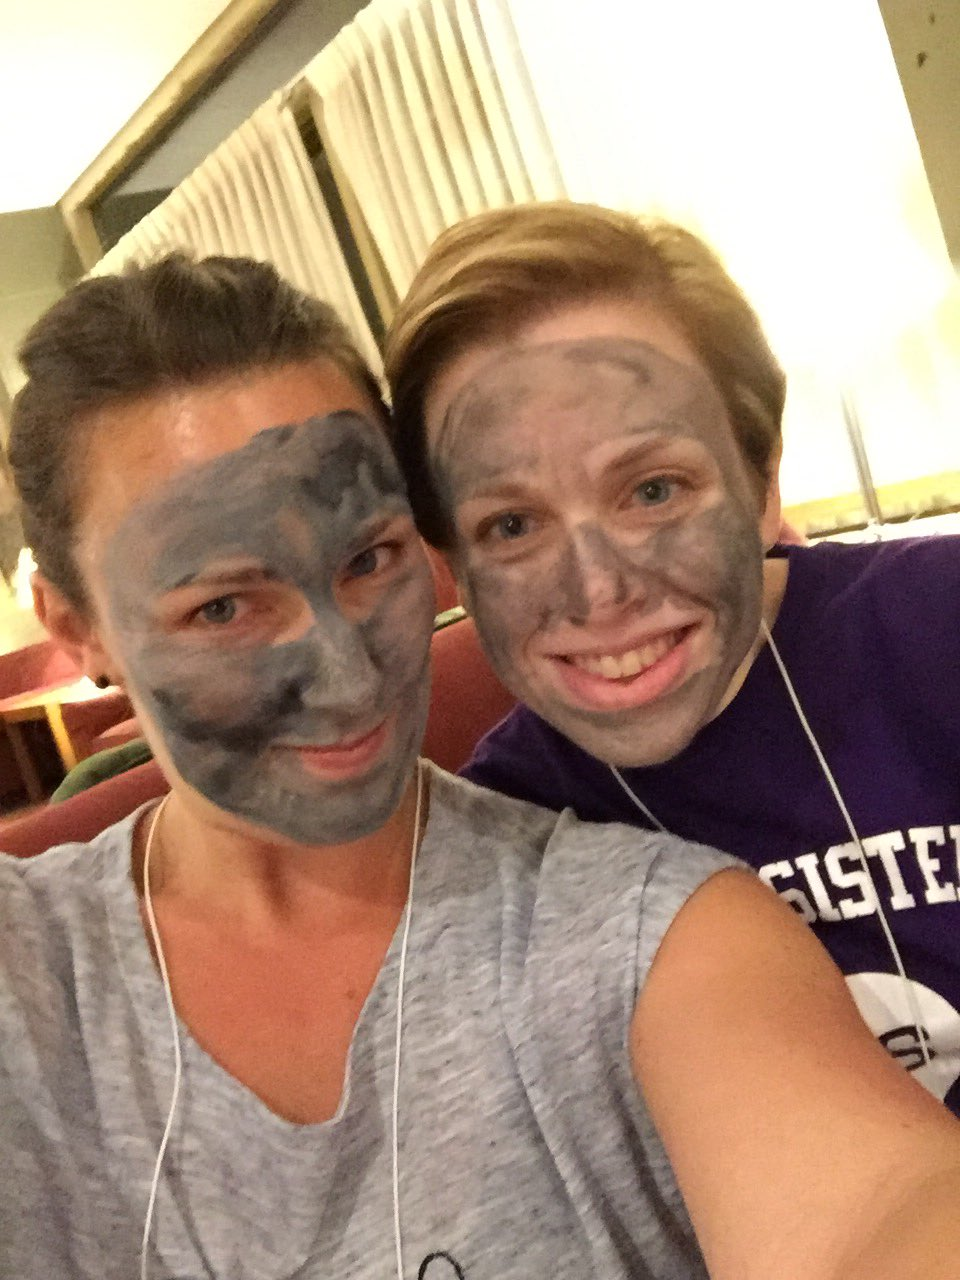 I had so much fun giving Mary Kay facials at #MHCreunion this weekend! It was like a giant slumber party 😆@aamhc @mtholyoke https://t.co/o7RlwRfQNO